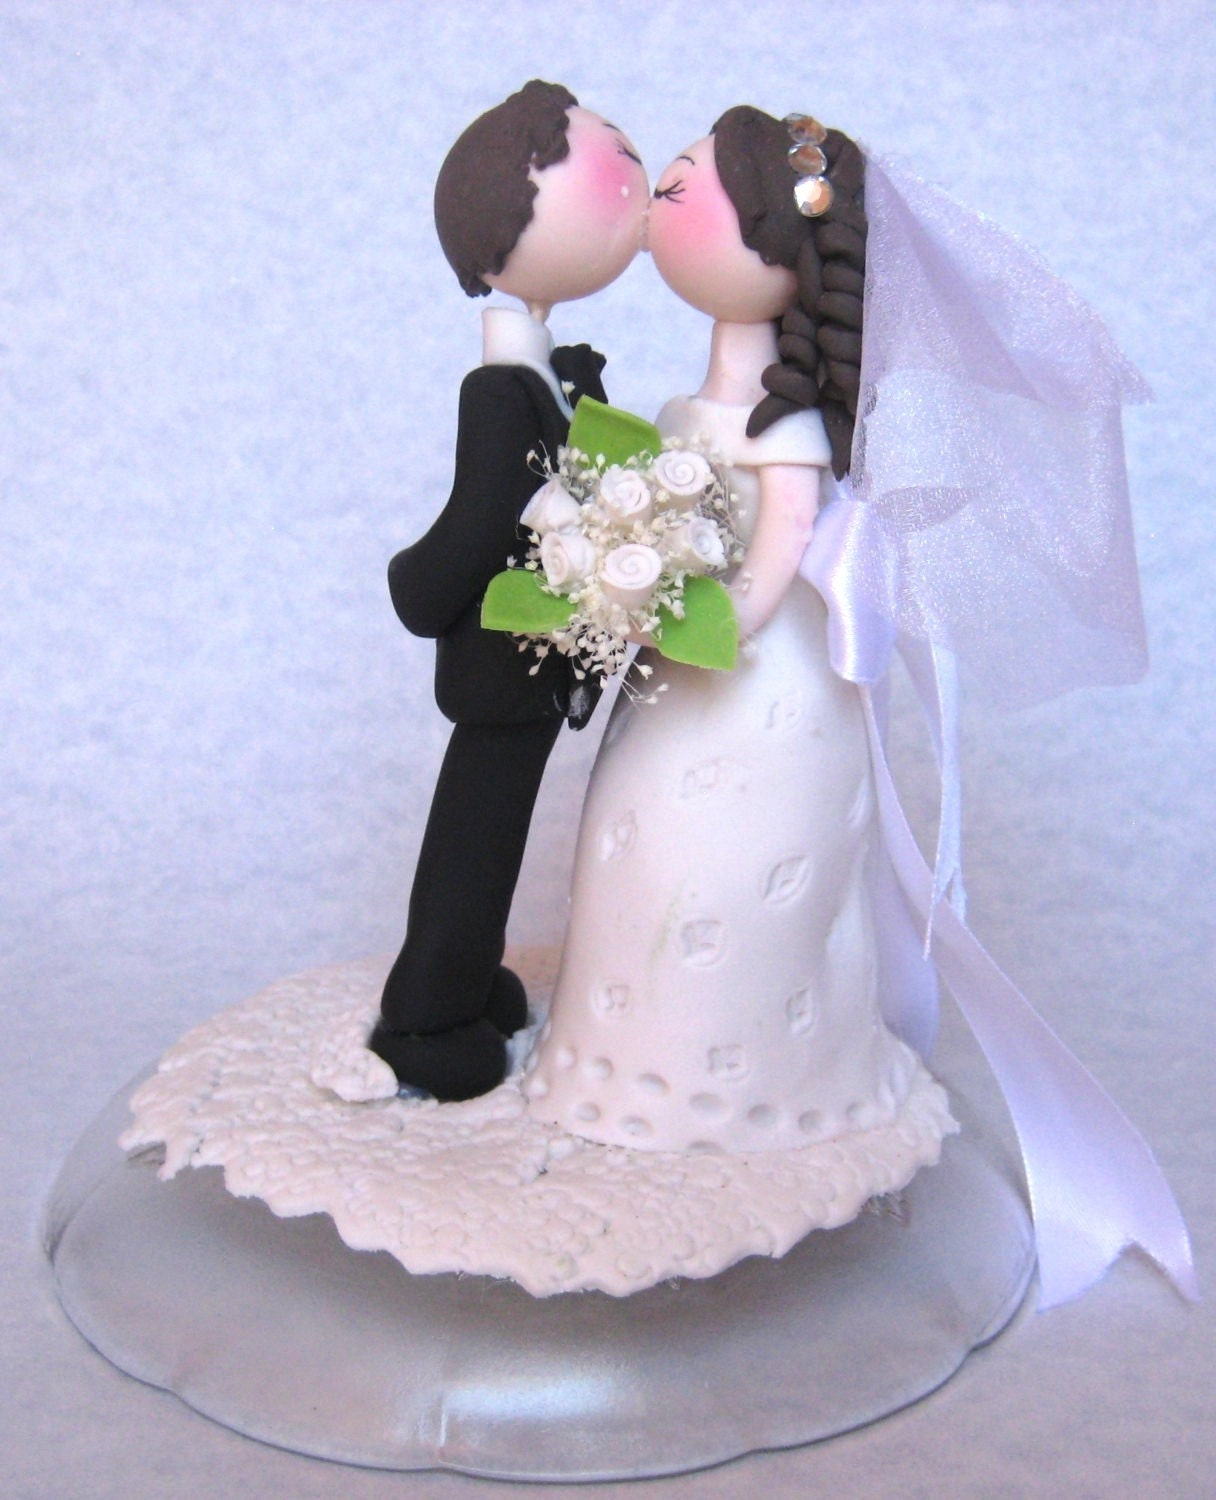 Make Your Own Wedding Topper: Wedding Cake Topper Romantic Wedding Cake Topper Groom